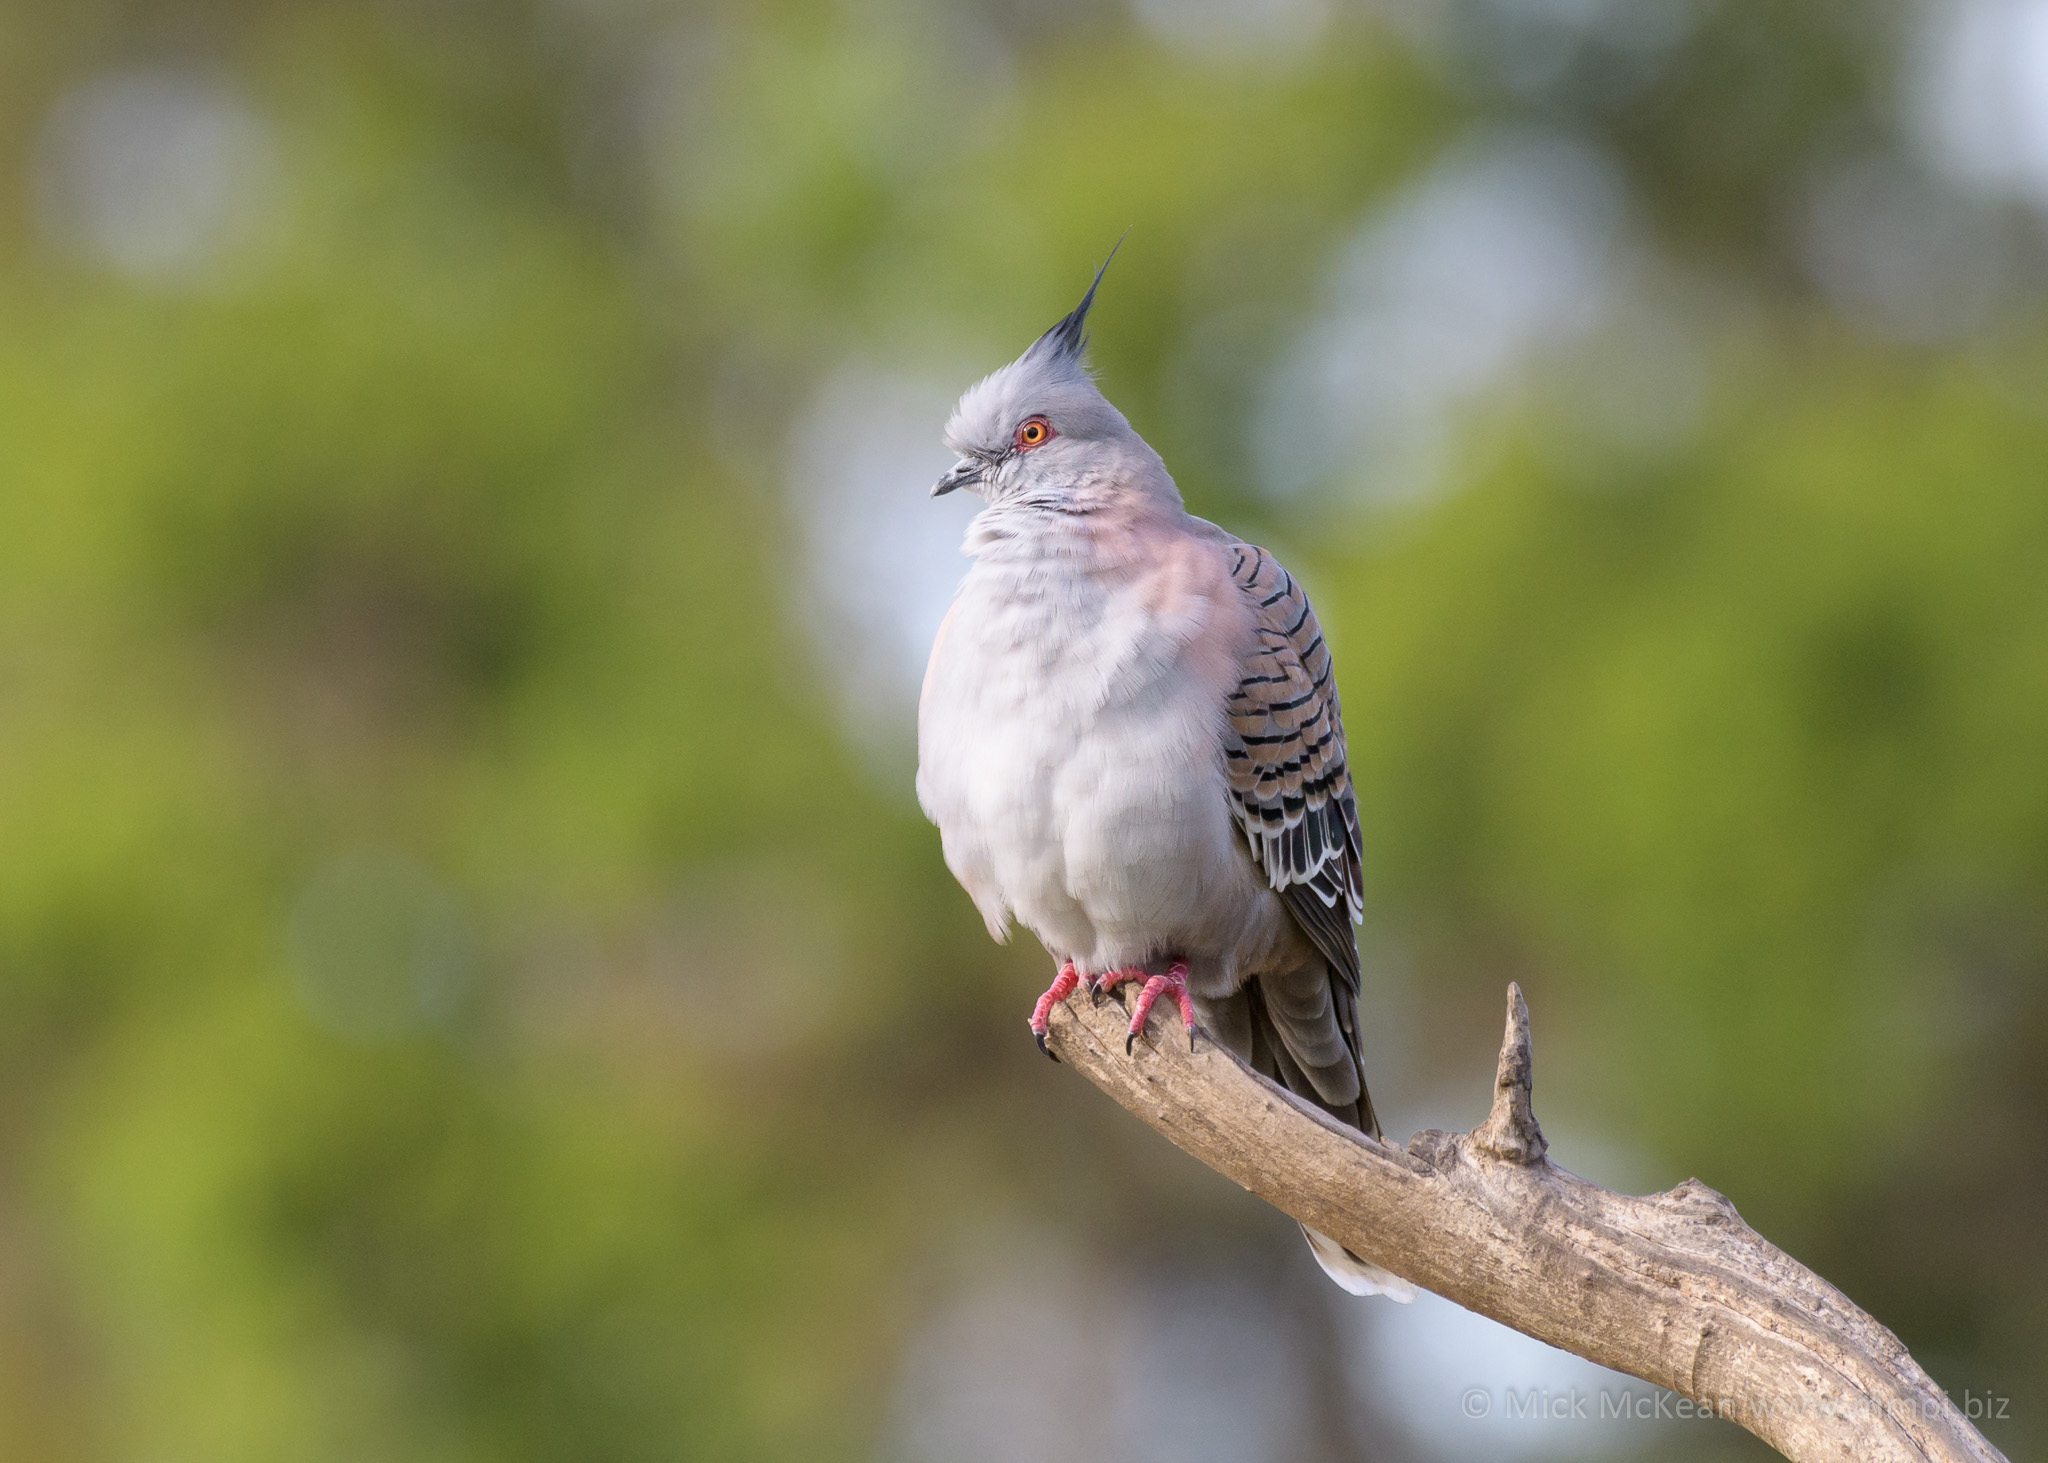 Fluffy Crested Pigeon